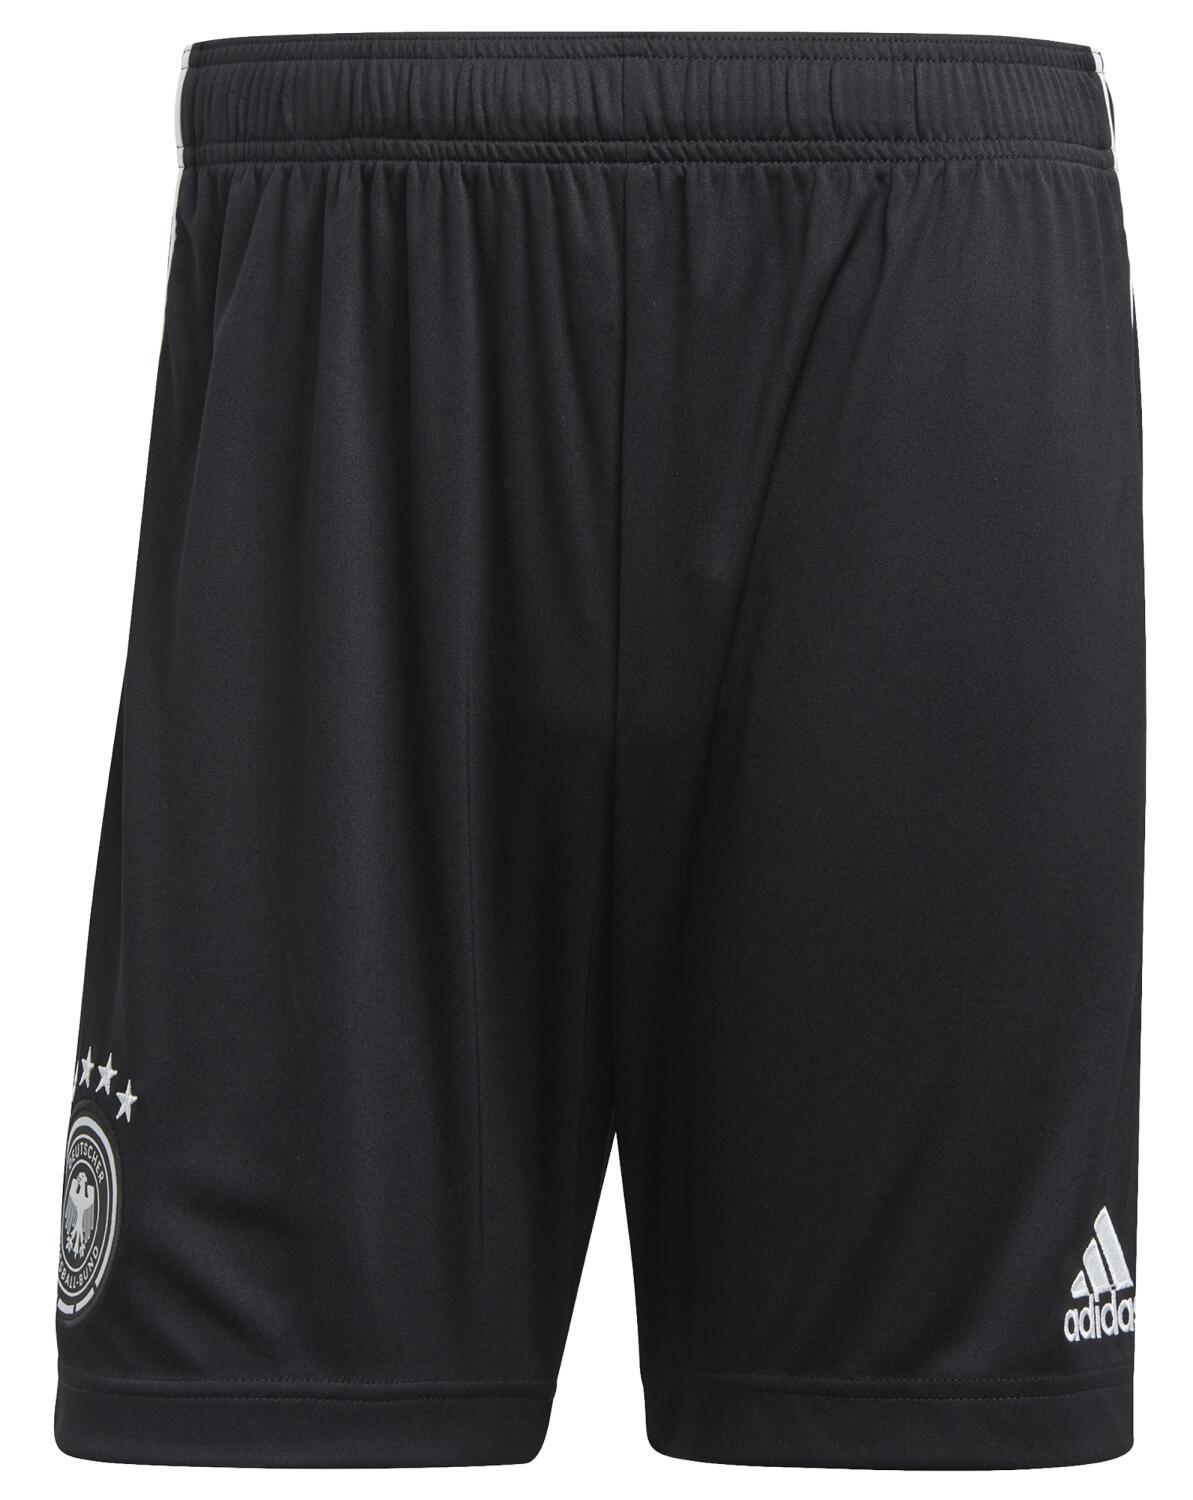 adidas DFB Homeshort Replica